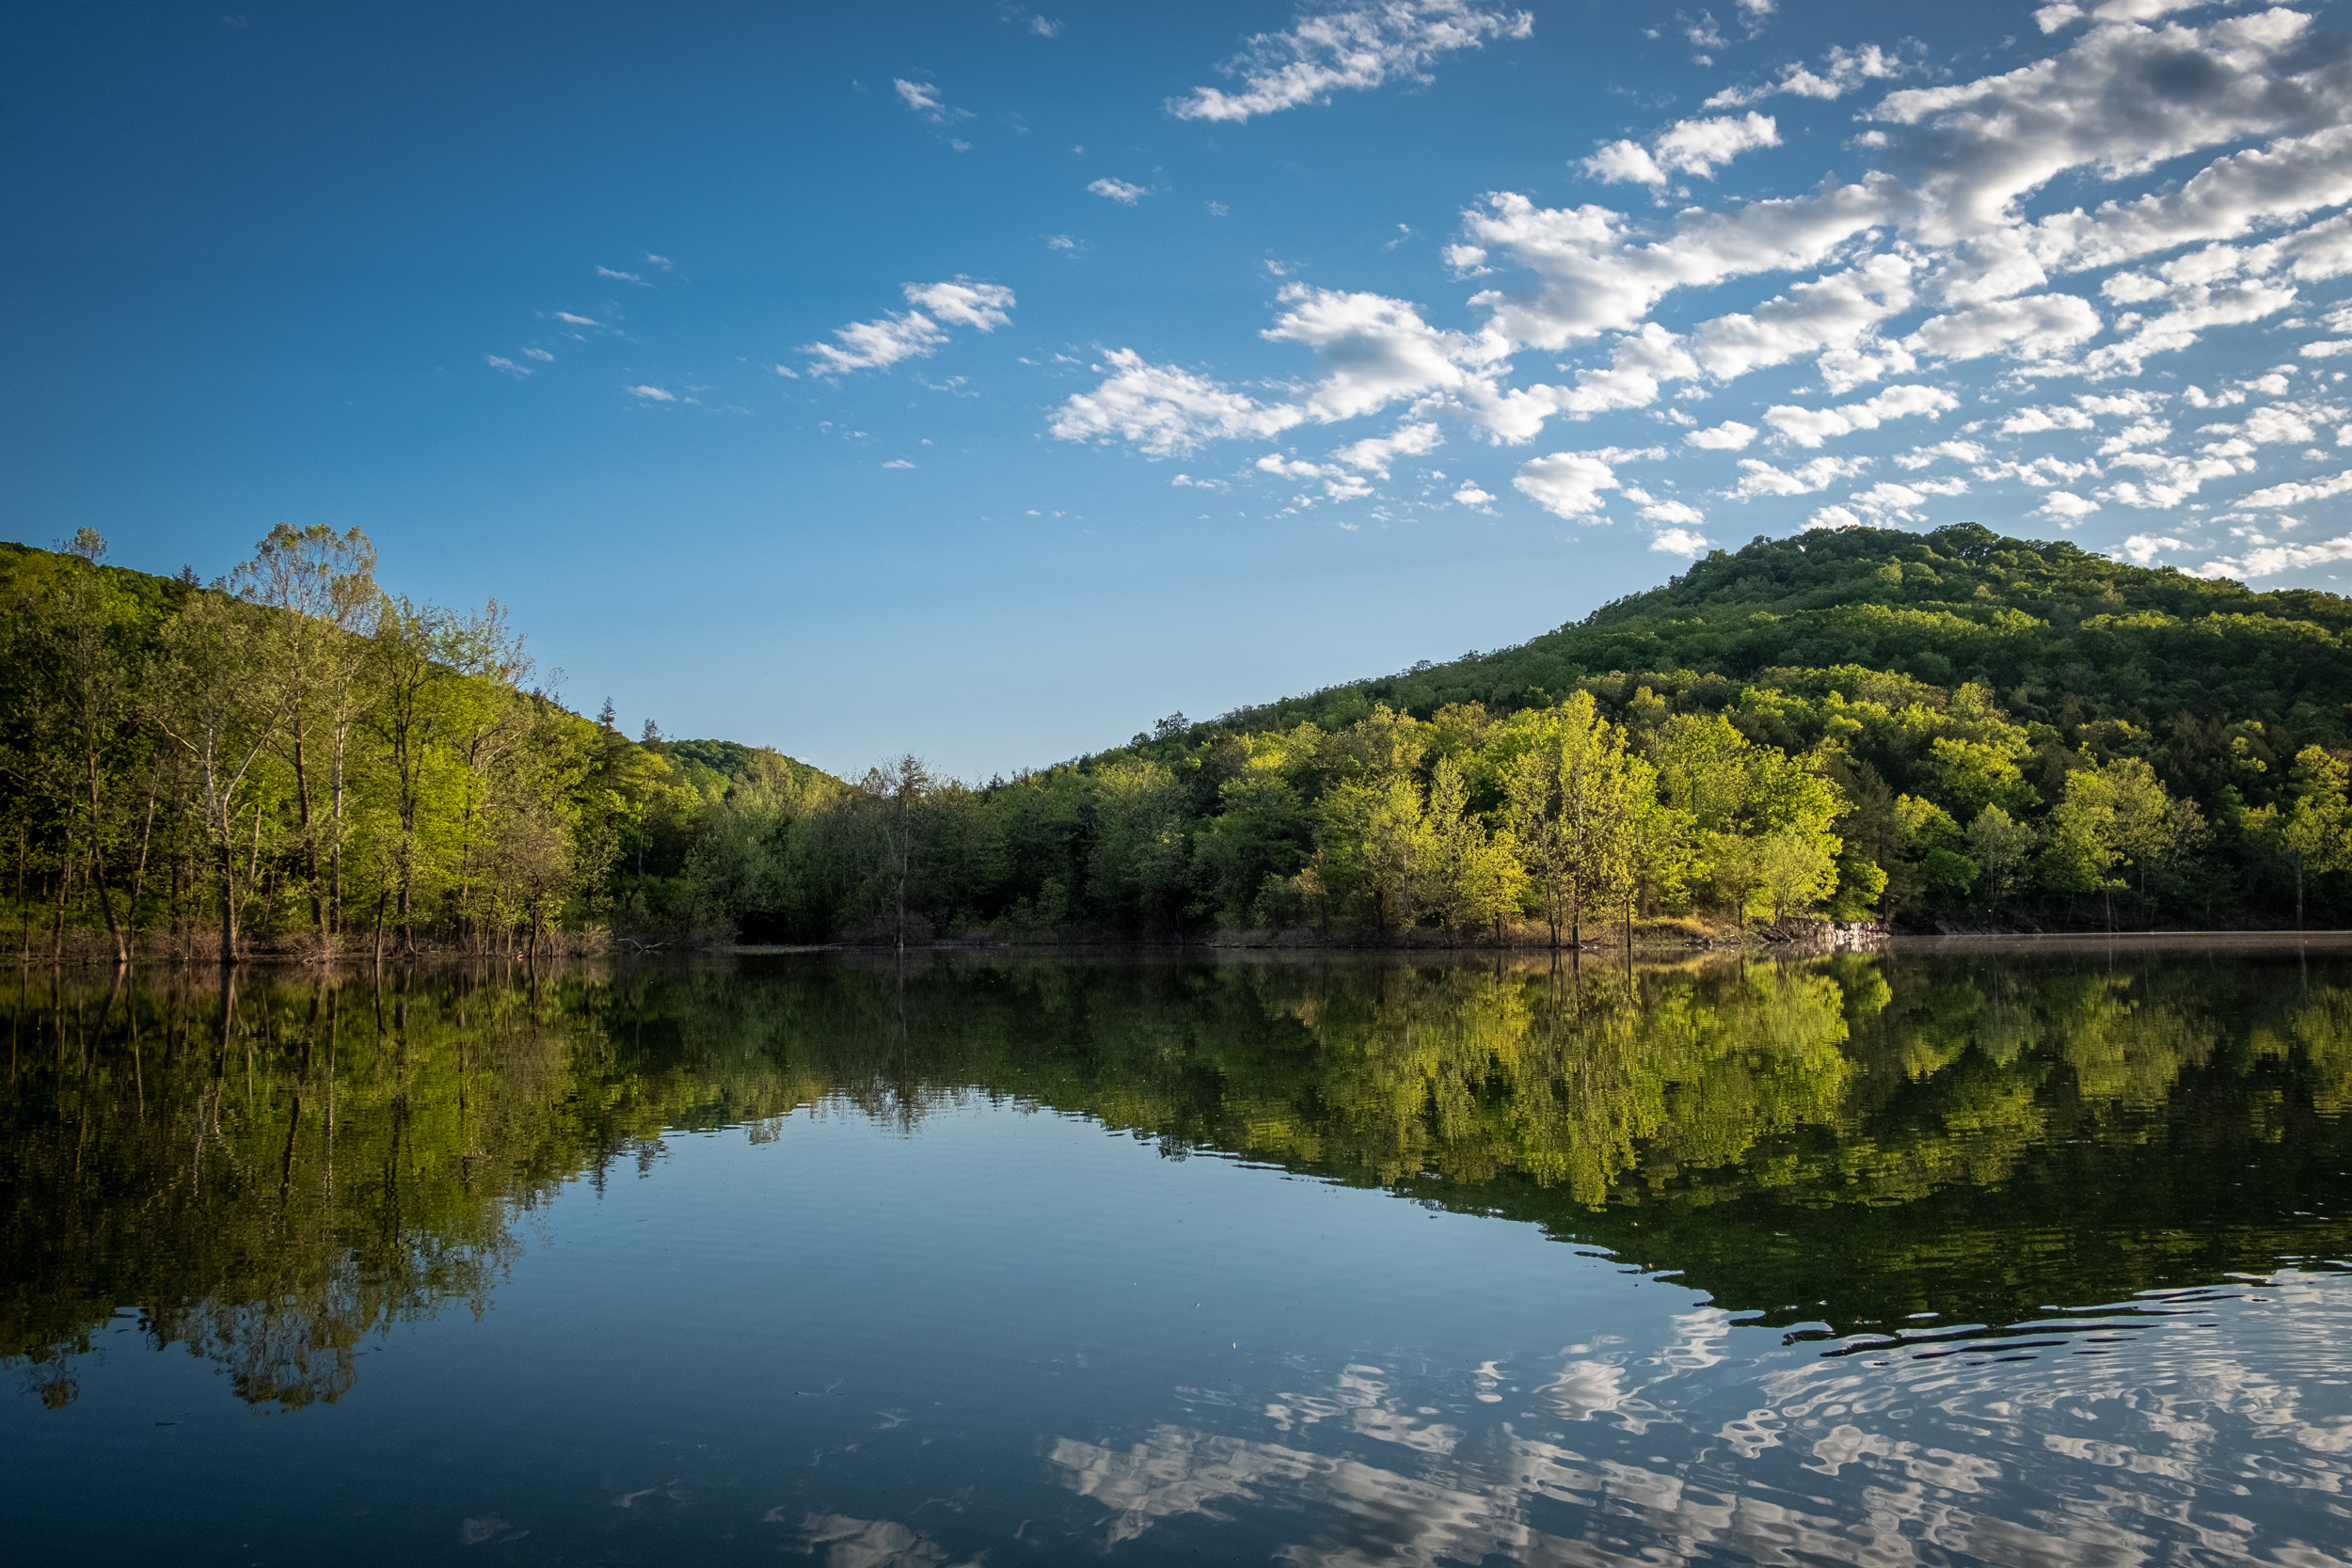 Photograph of Table Rock Lake at Piney Creek Wilderness. Mark Twain National Forest. Spring 2020.